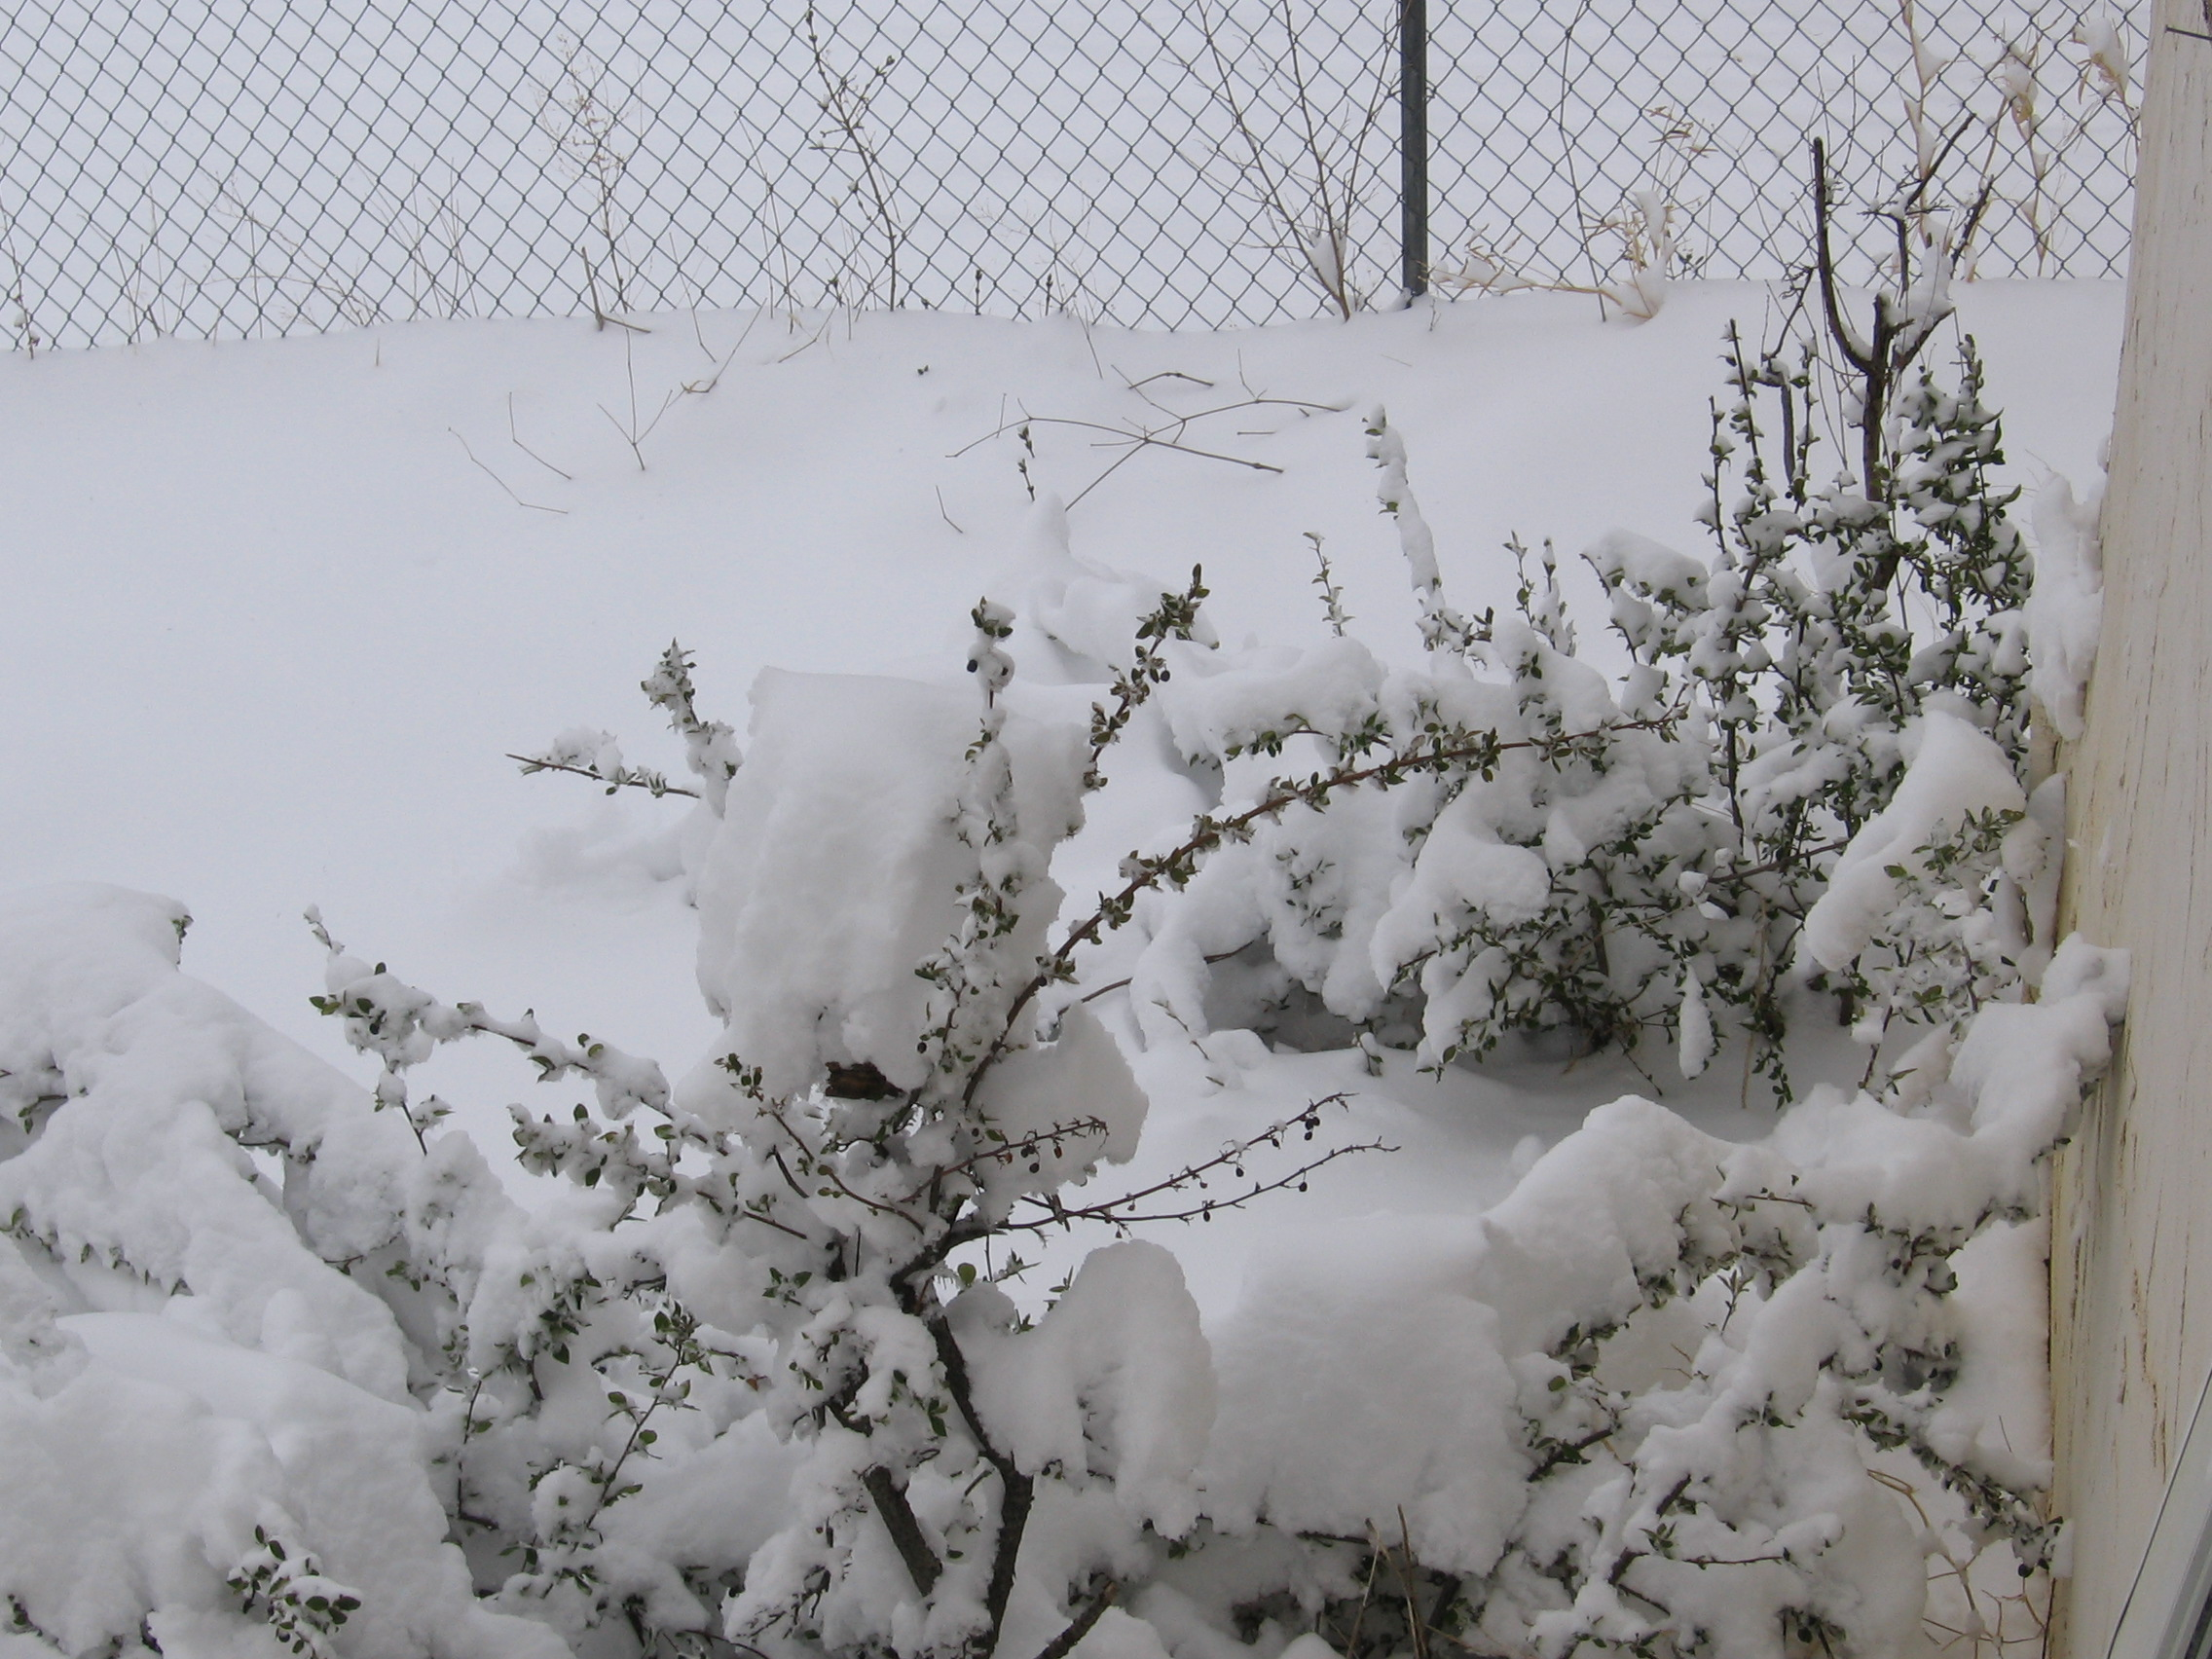 Budding shrubs covered in snow